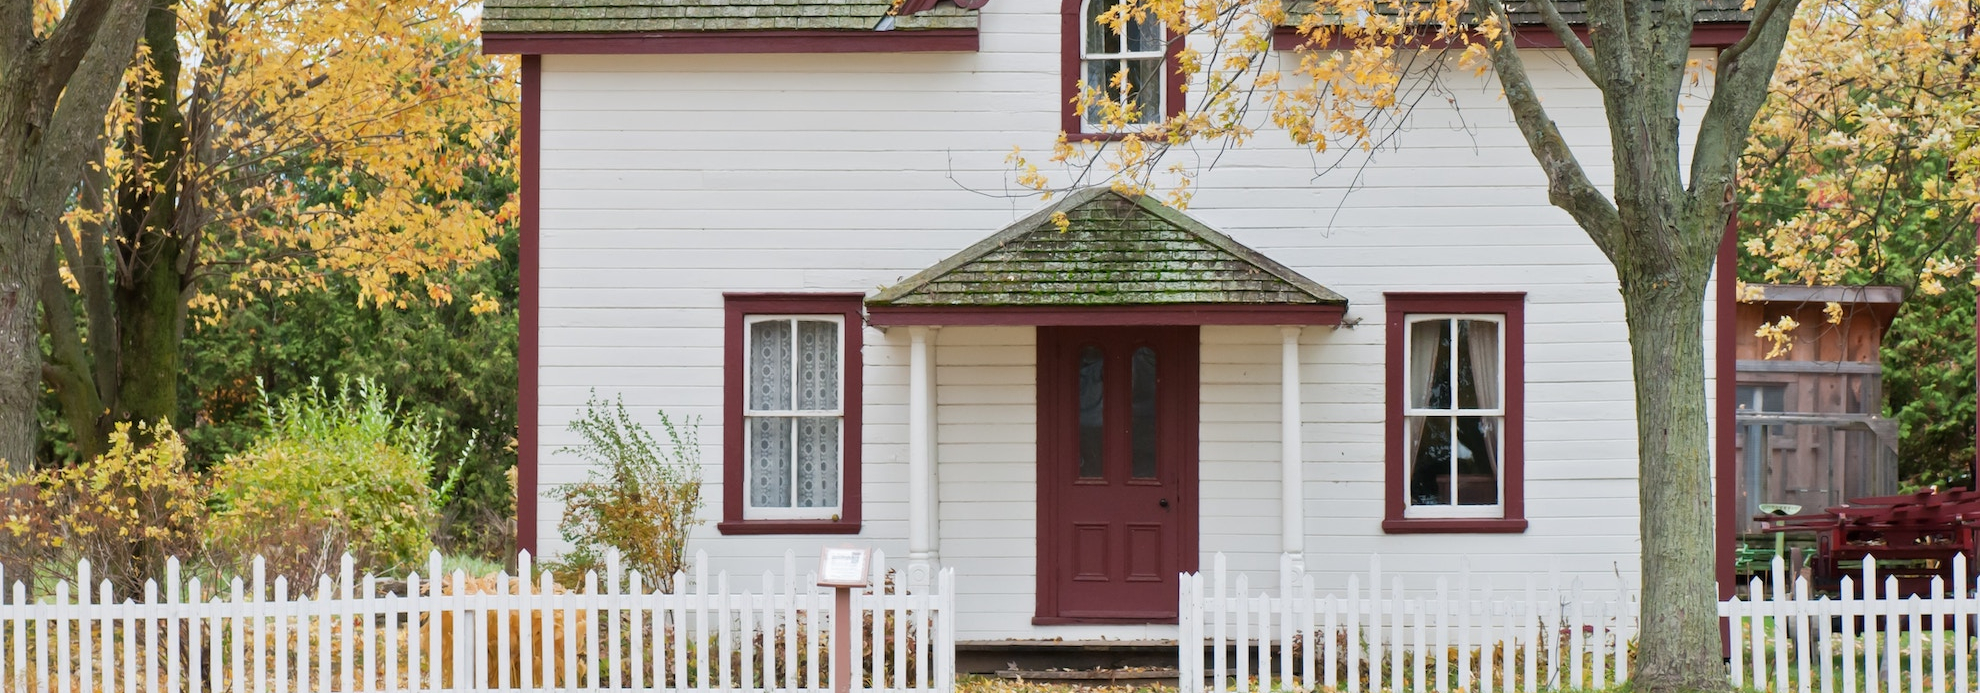 Thinking about buying your first home? 5 things you should consider first